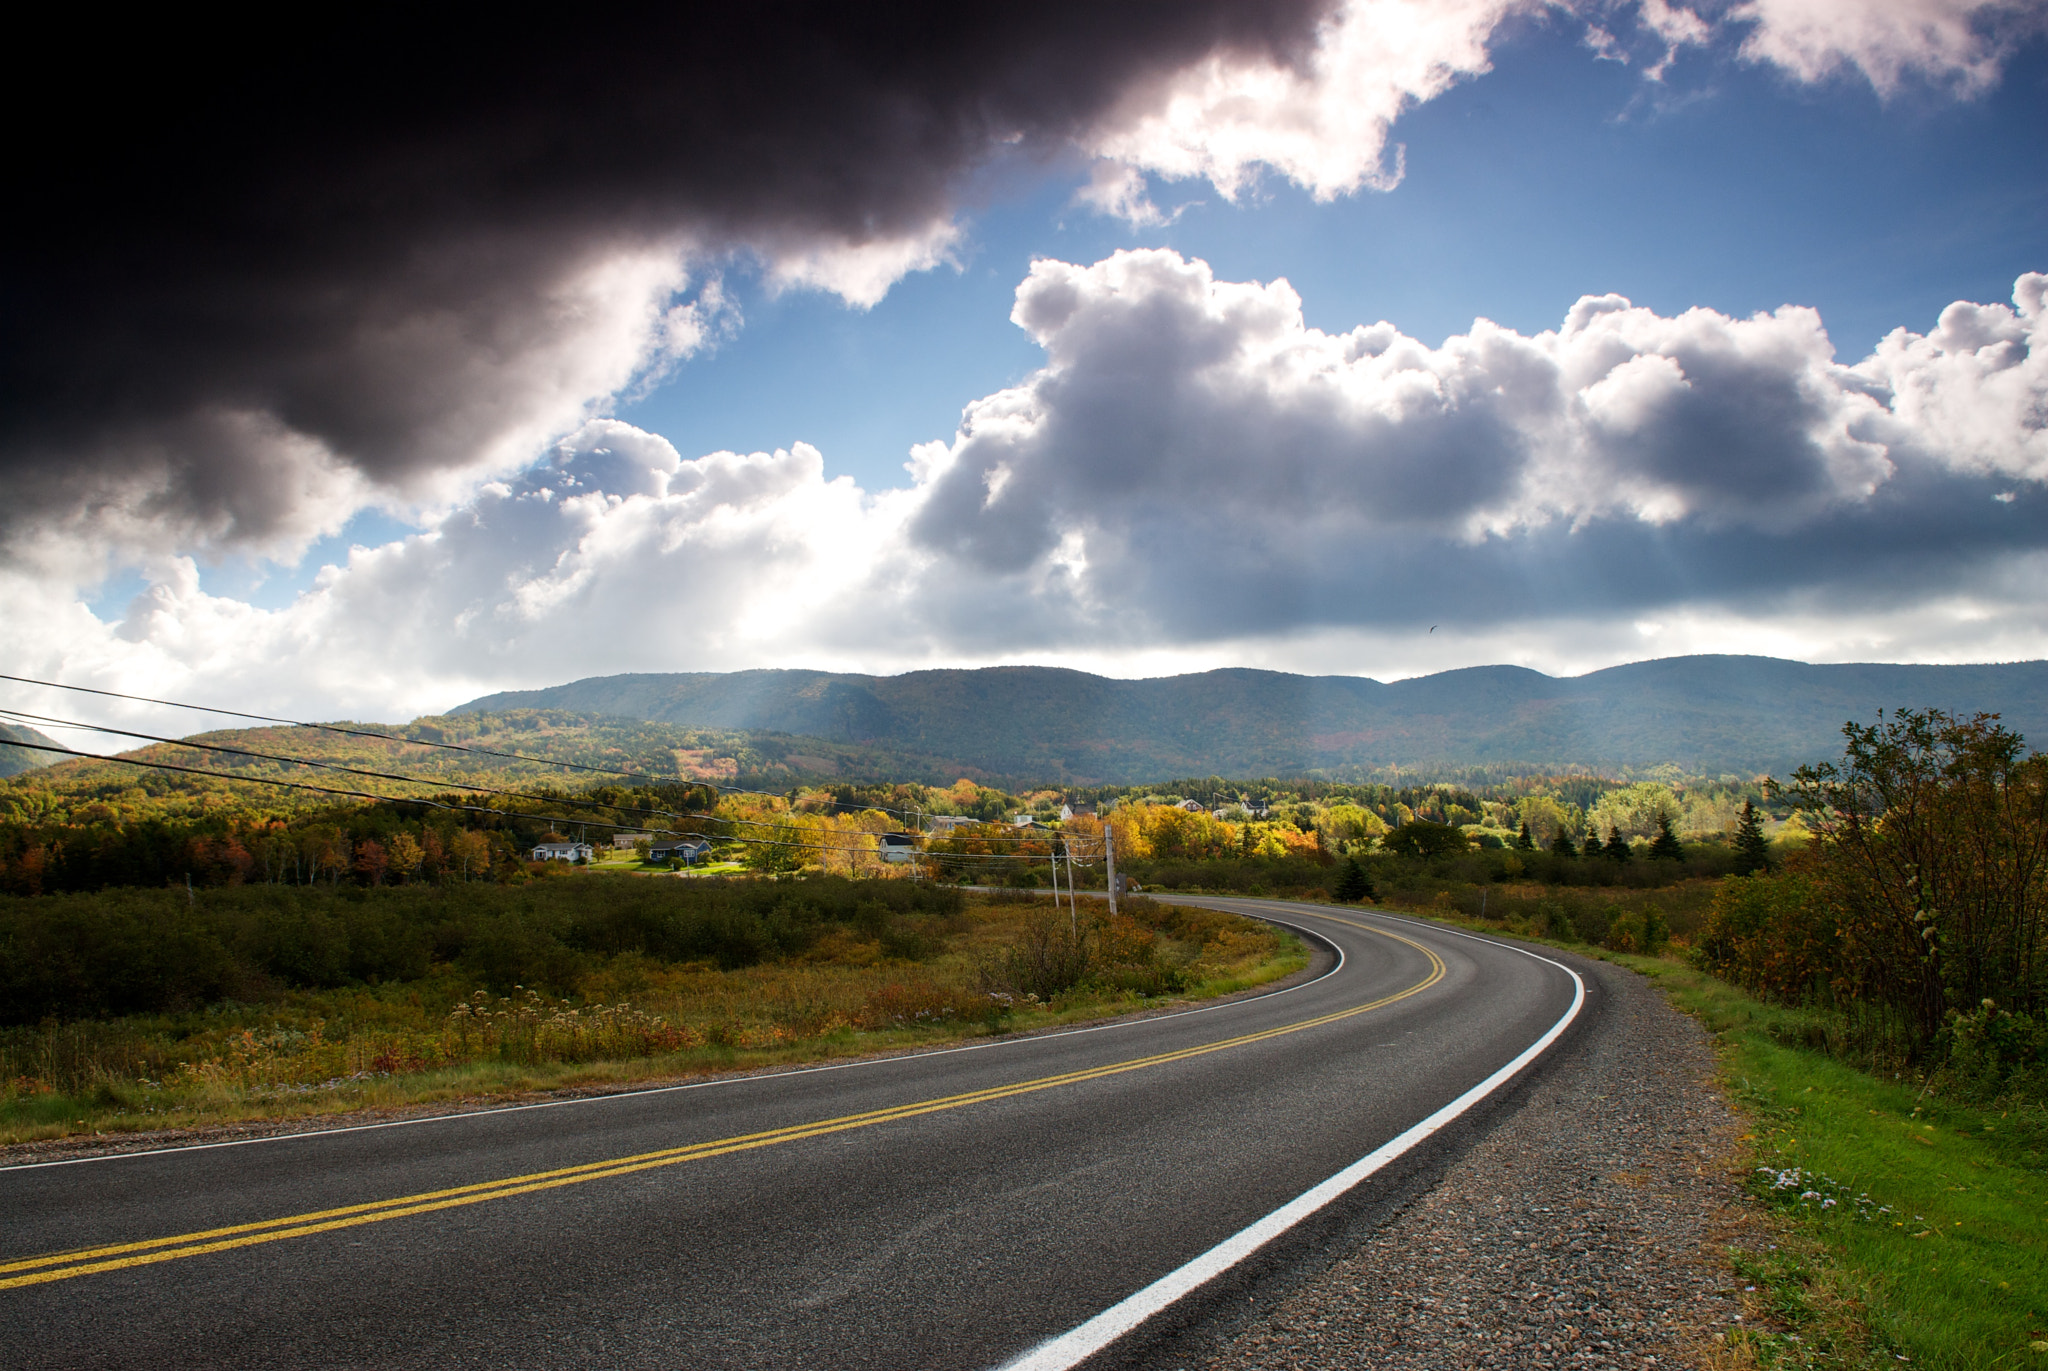 Photograph The Road by Zee Kid Leung on 500px